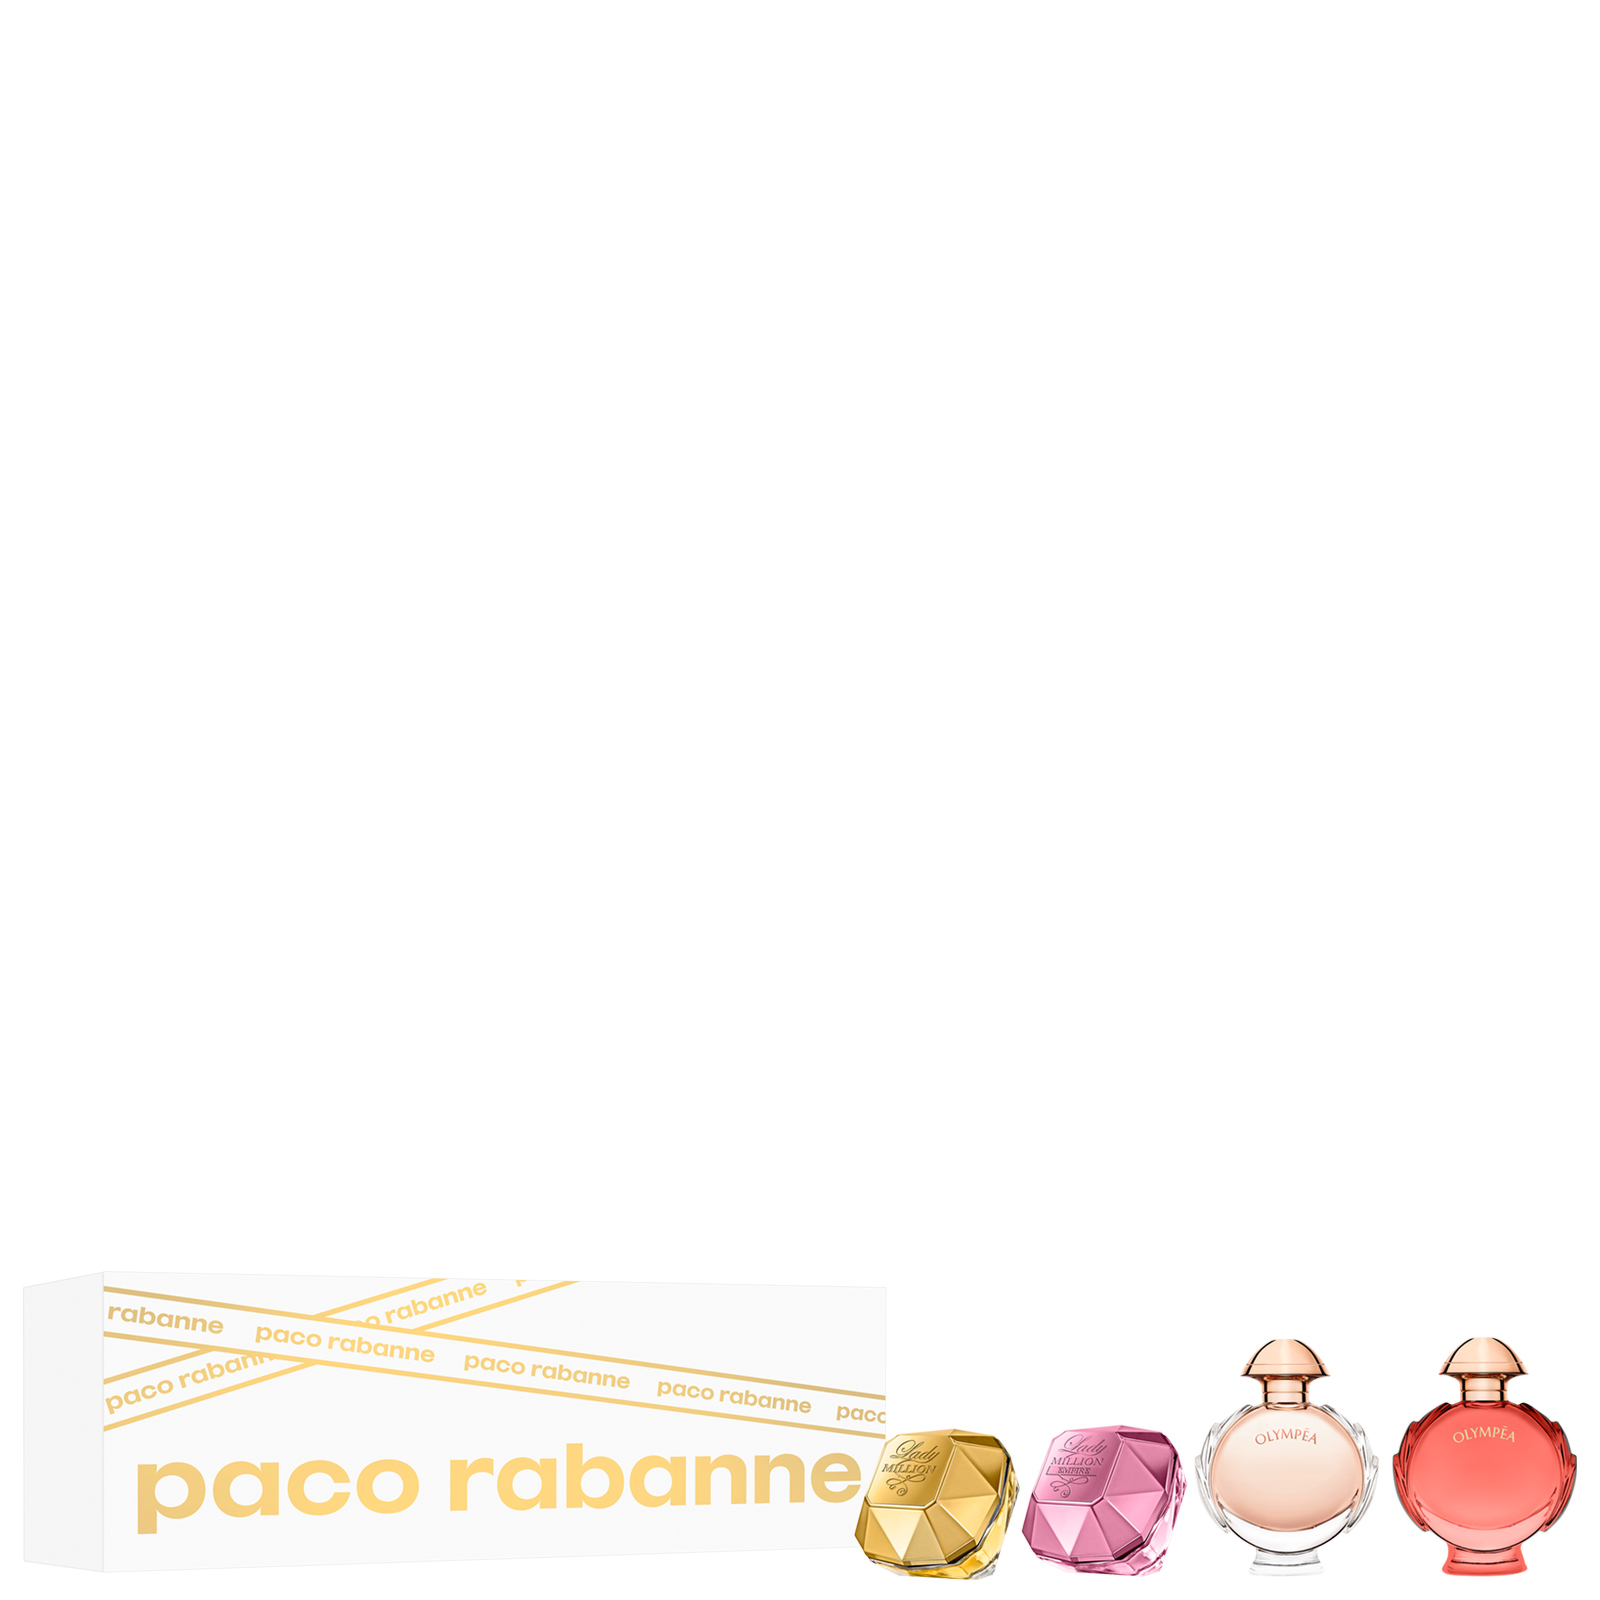 Paco Rabanne Christmas 2020 Miniature Gift Set For Women Gifts Sets